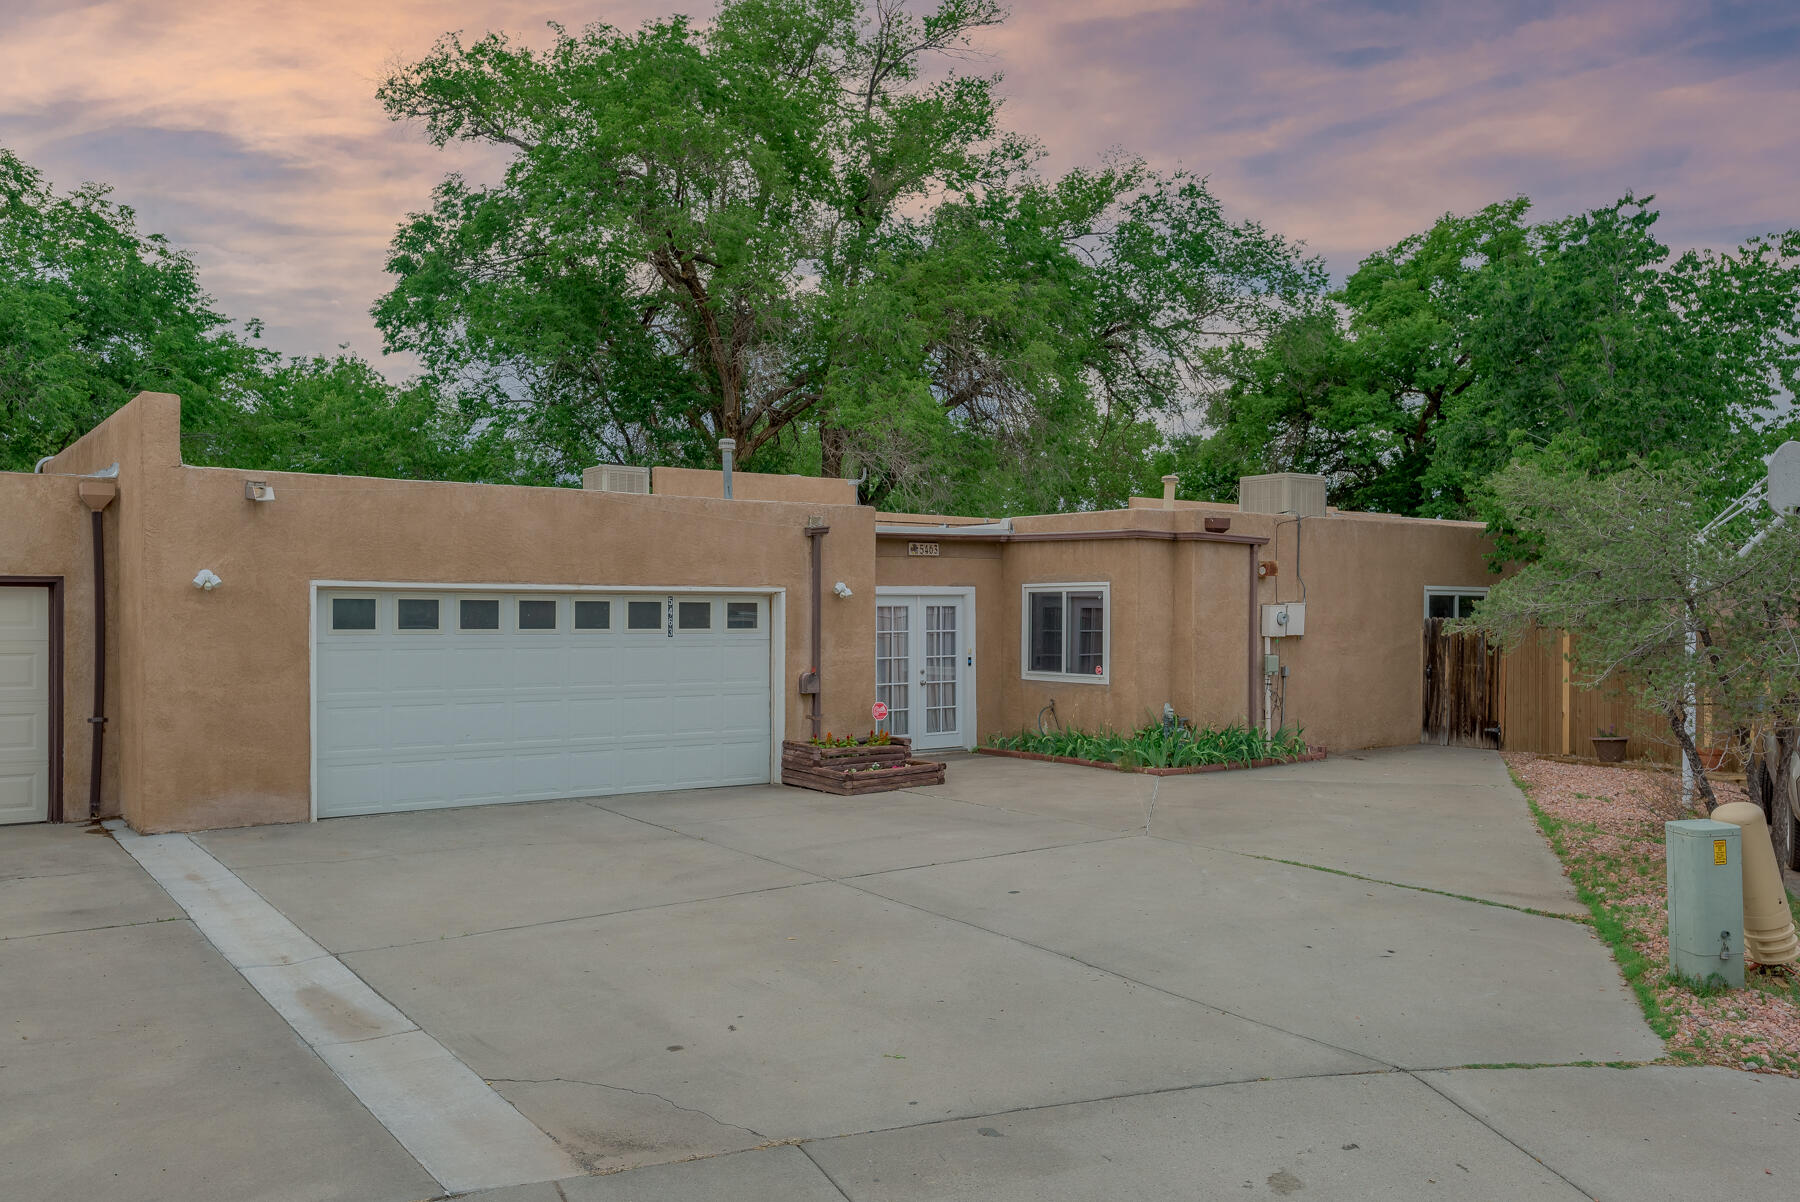 Wonderful gem in the North Valley!  Lots of potential in this desirable Montano Village central location! Newer Modern Windows, Newer Luxury wood/tile flooring, elevated wood beam ceilings, Possible 4th Bedroom or hobby room , plant or sunroom/sewing room,  Updated galley-style Kitchen opens to elegant Formal Dining concept,  Large family room accompanied with lovely Fireplace for winter nights.  Lots of storage & closet space. Fancy wet bar area for entertaining, French doors to Master has slider to outdoor living space. Wall divider near FP creates study . Endless possibilities!   Private Patios & 114 sq footage of storage rooms for your toys, gardening equipment. 2 New Coolers, year old TPO Roof, New H2O & heat unit , private patio space 2 entertain !Master/Fresh paint , No Hoa or PID